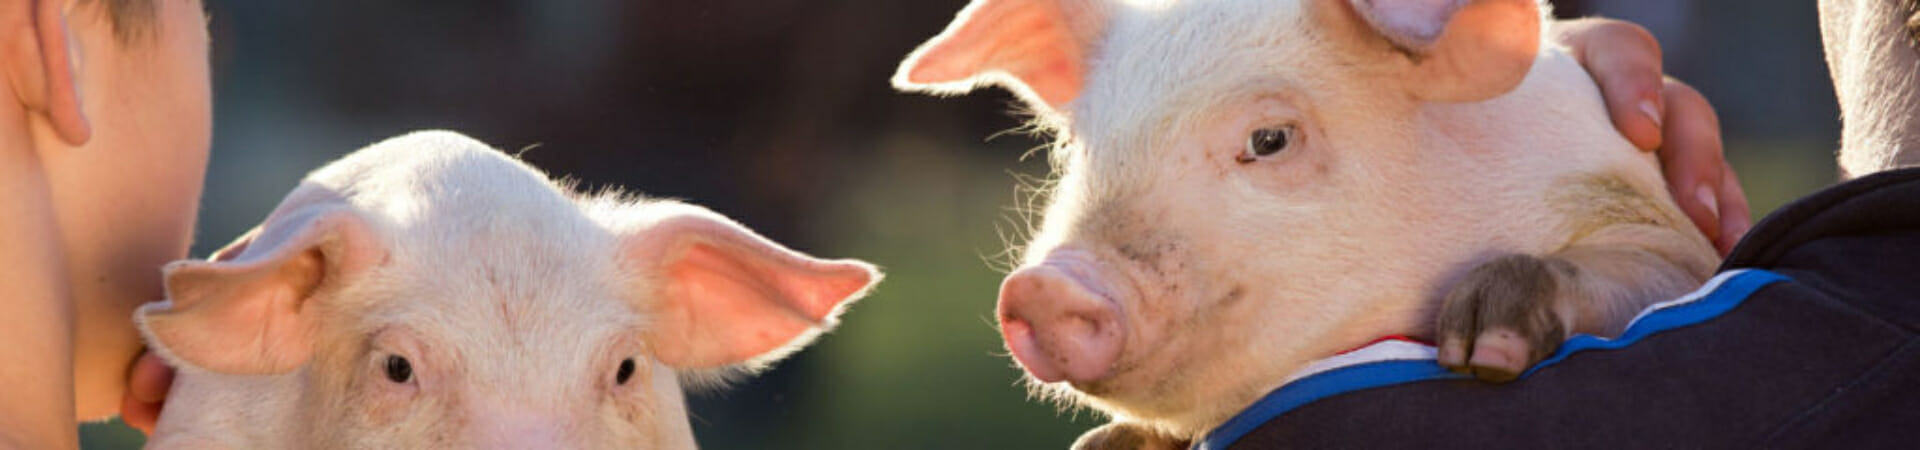 Free From Harm - Farm Animal Advocacy and Education